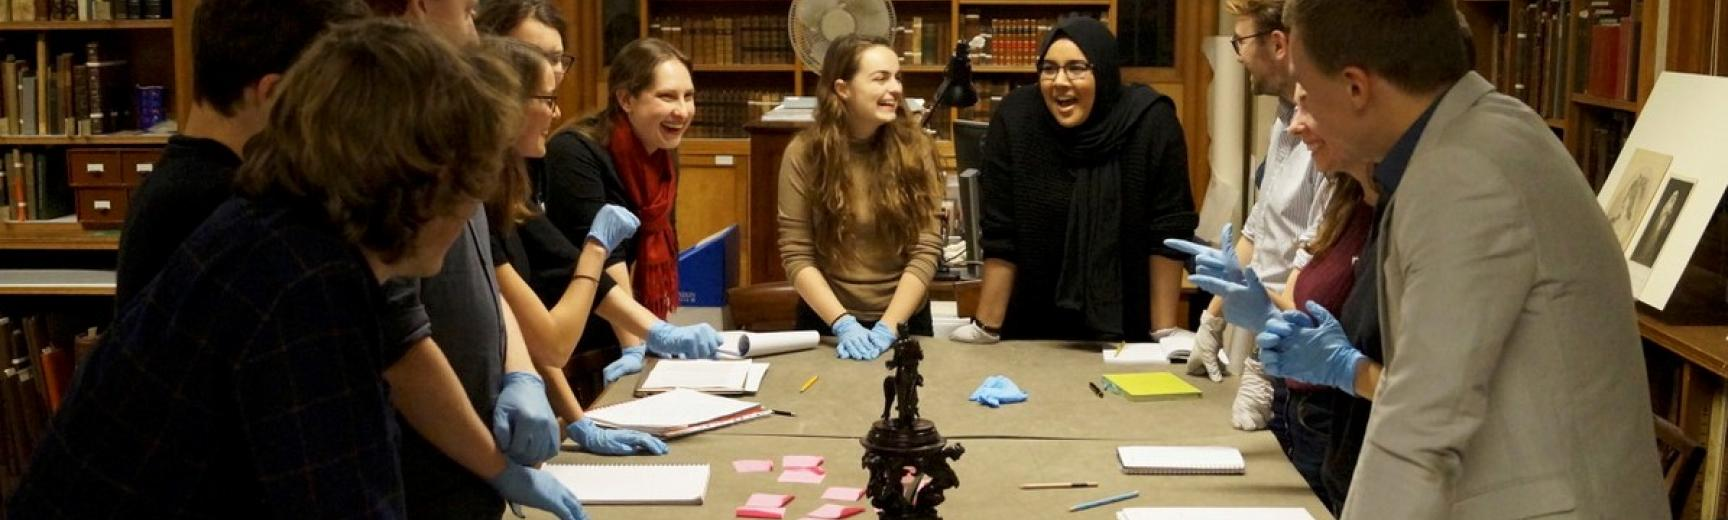 A group of students around a table of objects in a museum study room